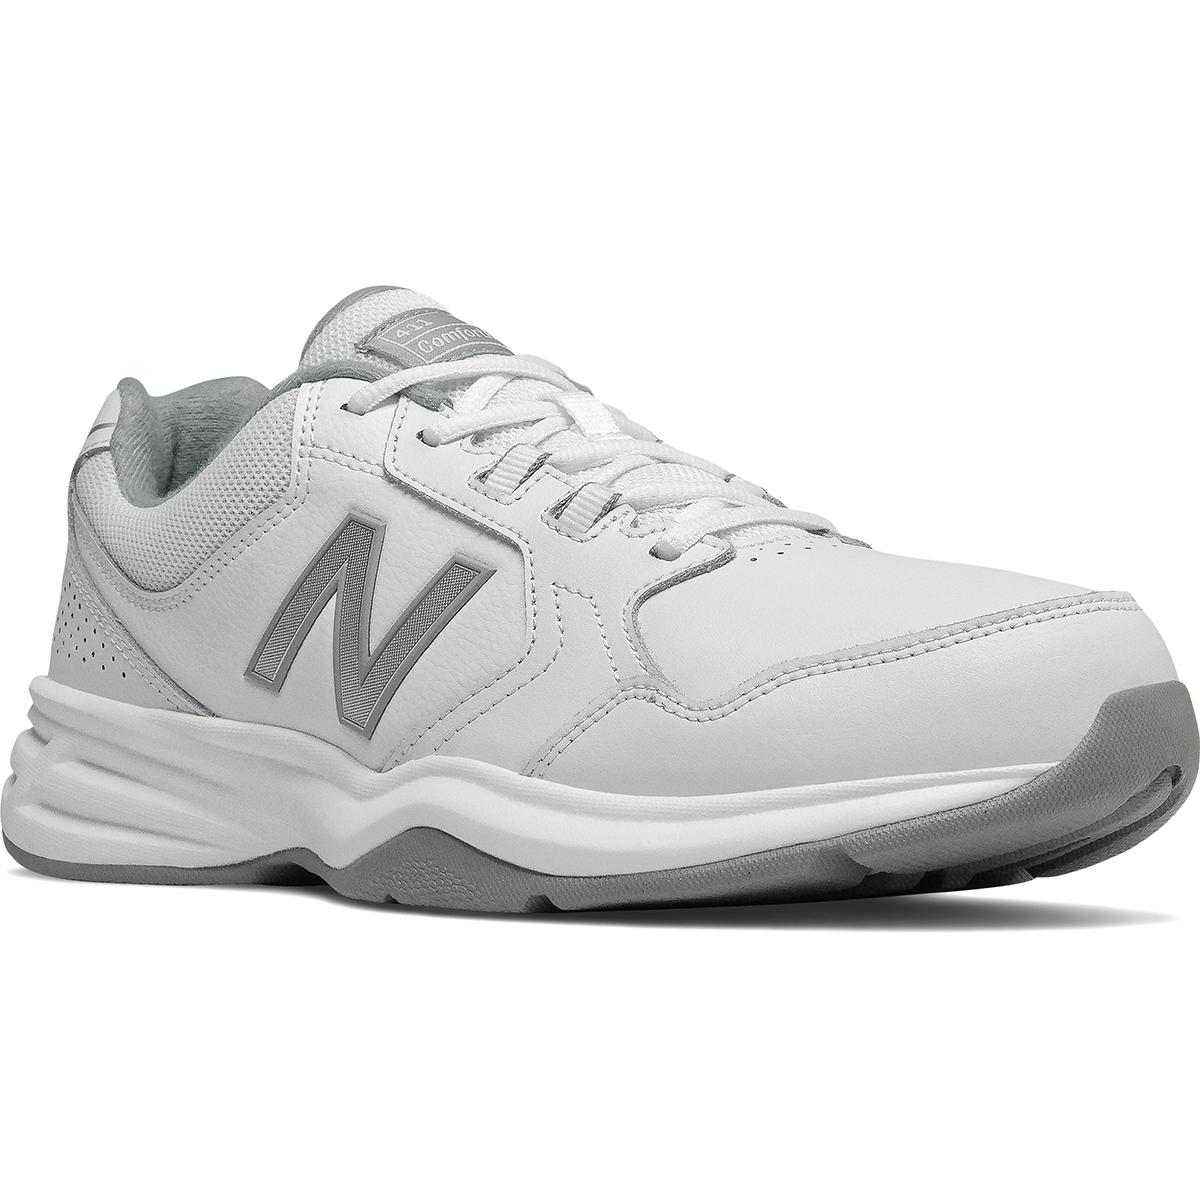 New Balance Men's 411 Walking Shoes, Wide - White, 8